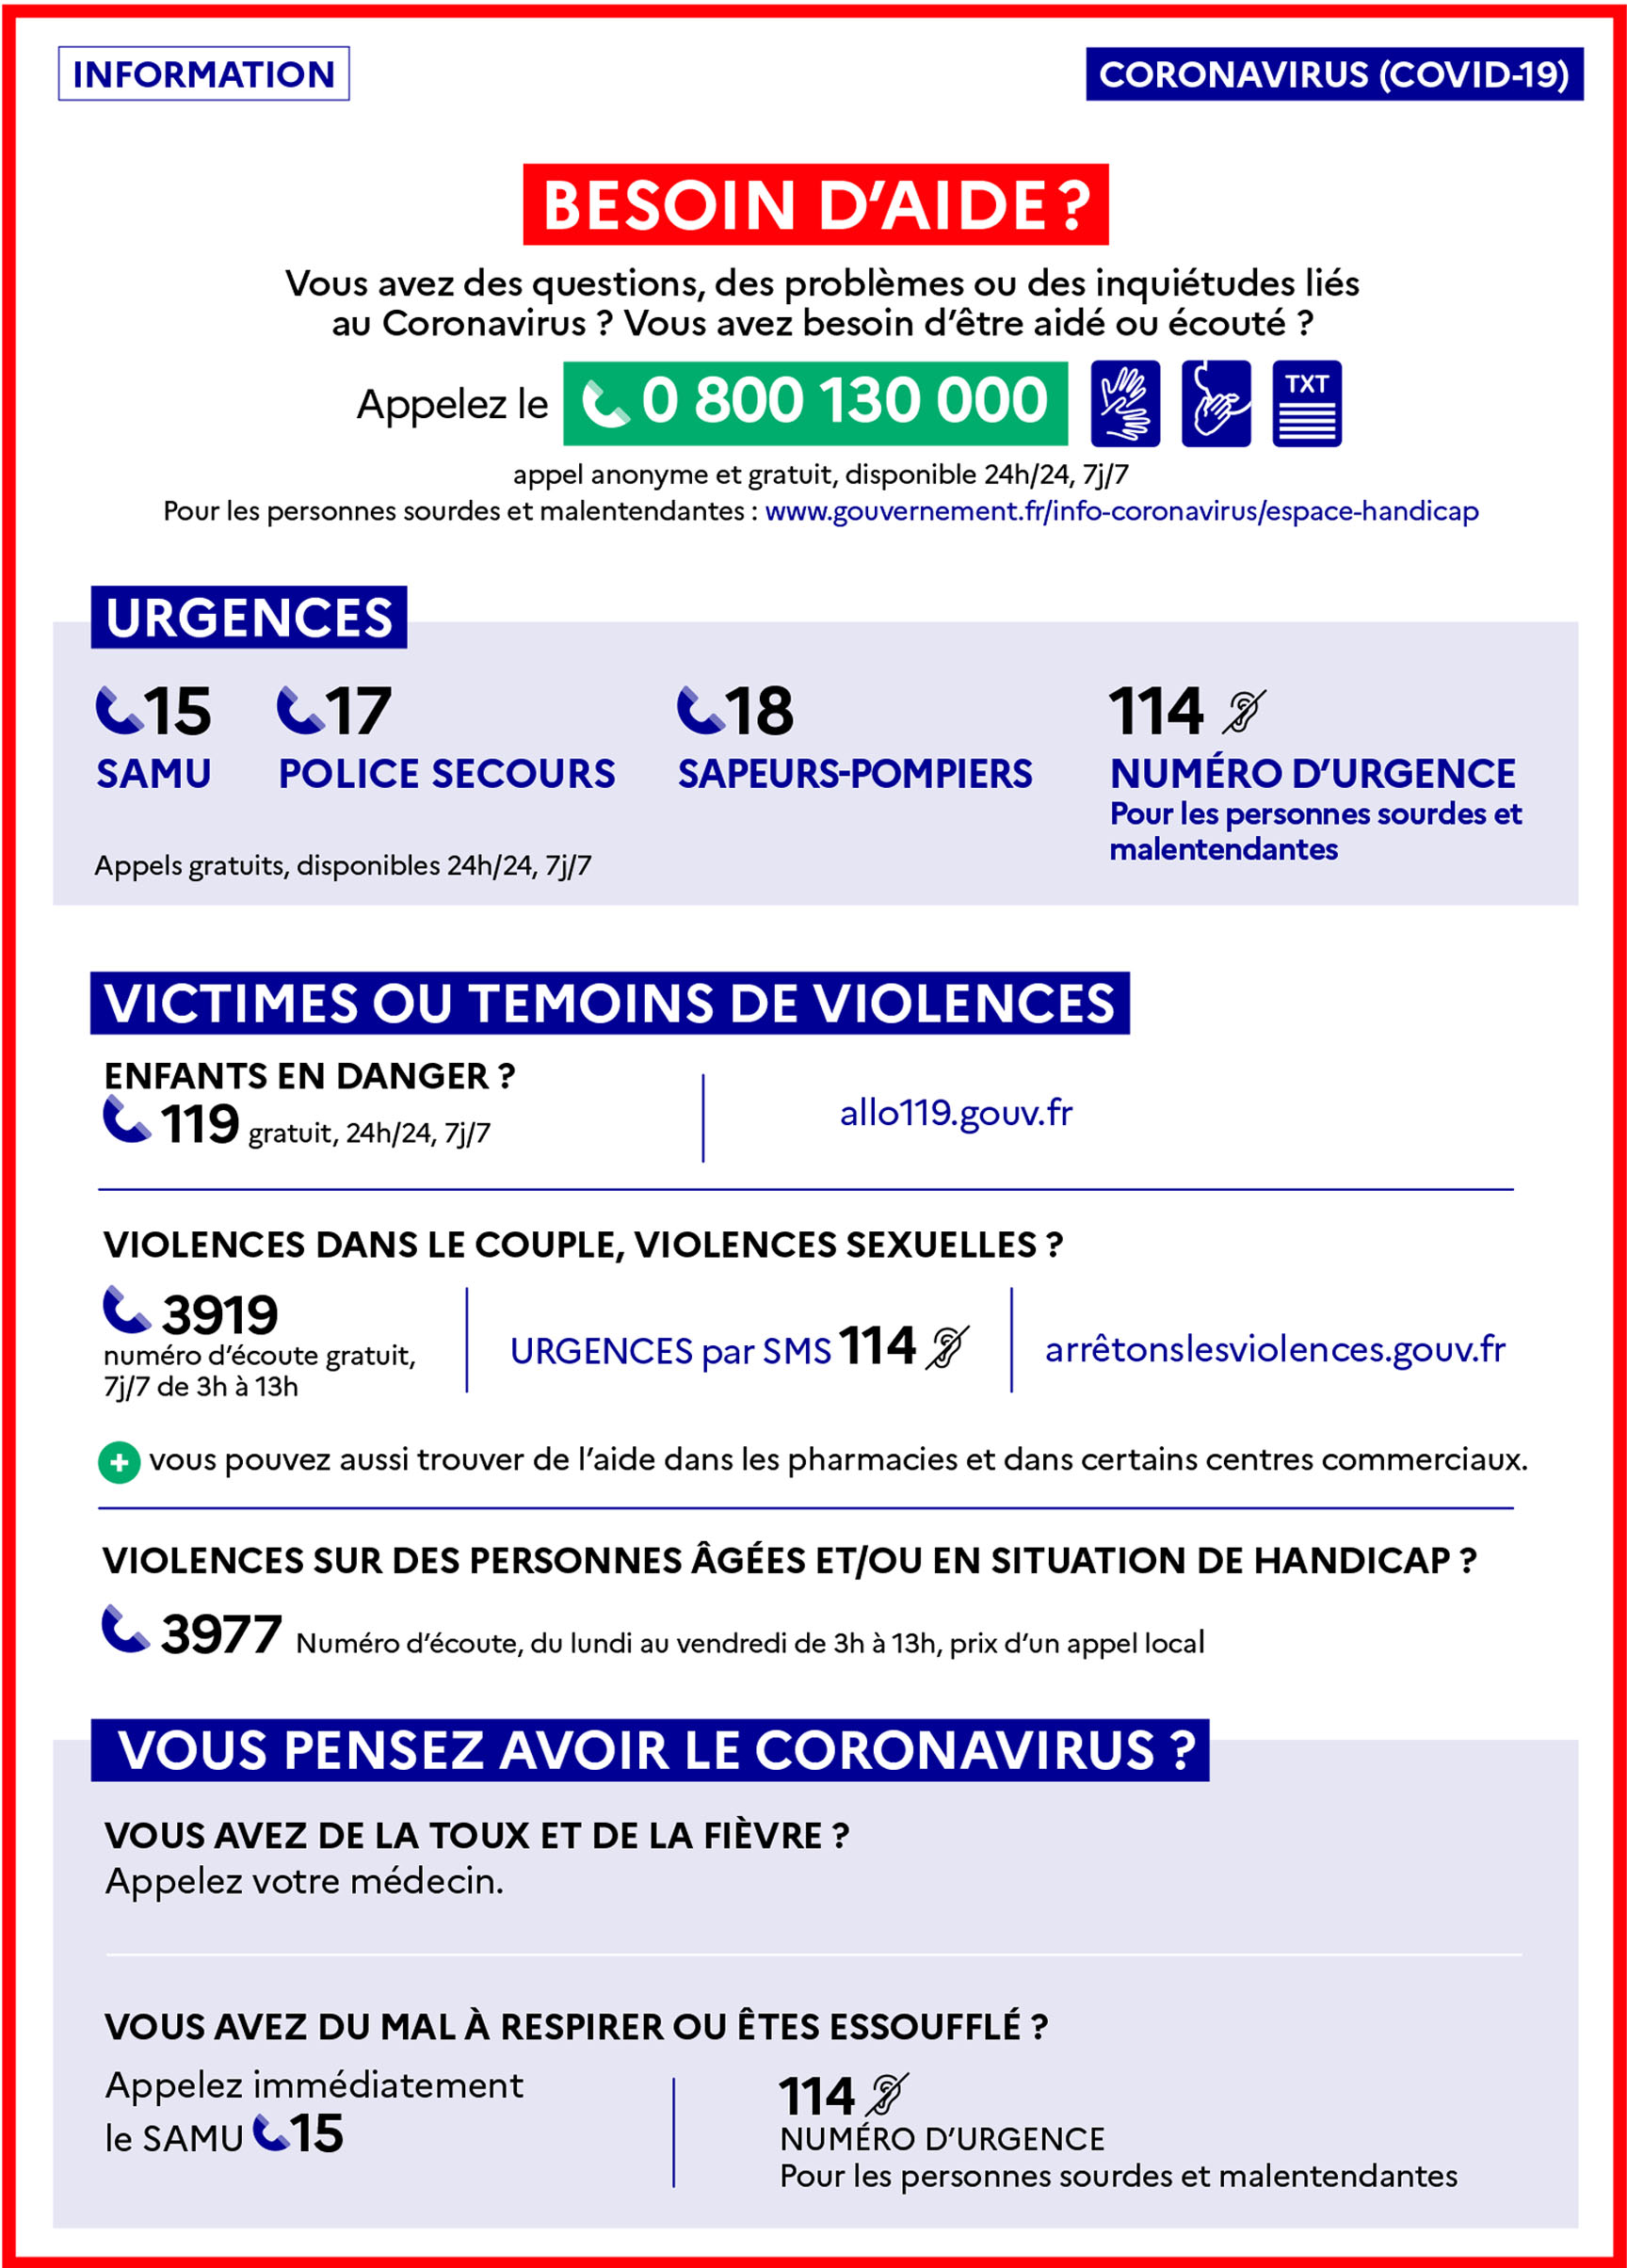 Guide_COVID19_Guadeloupe_BesoindAide_30avril2020_A4-1